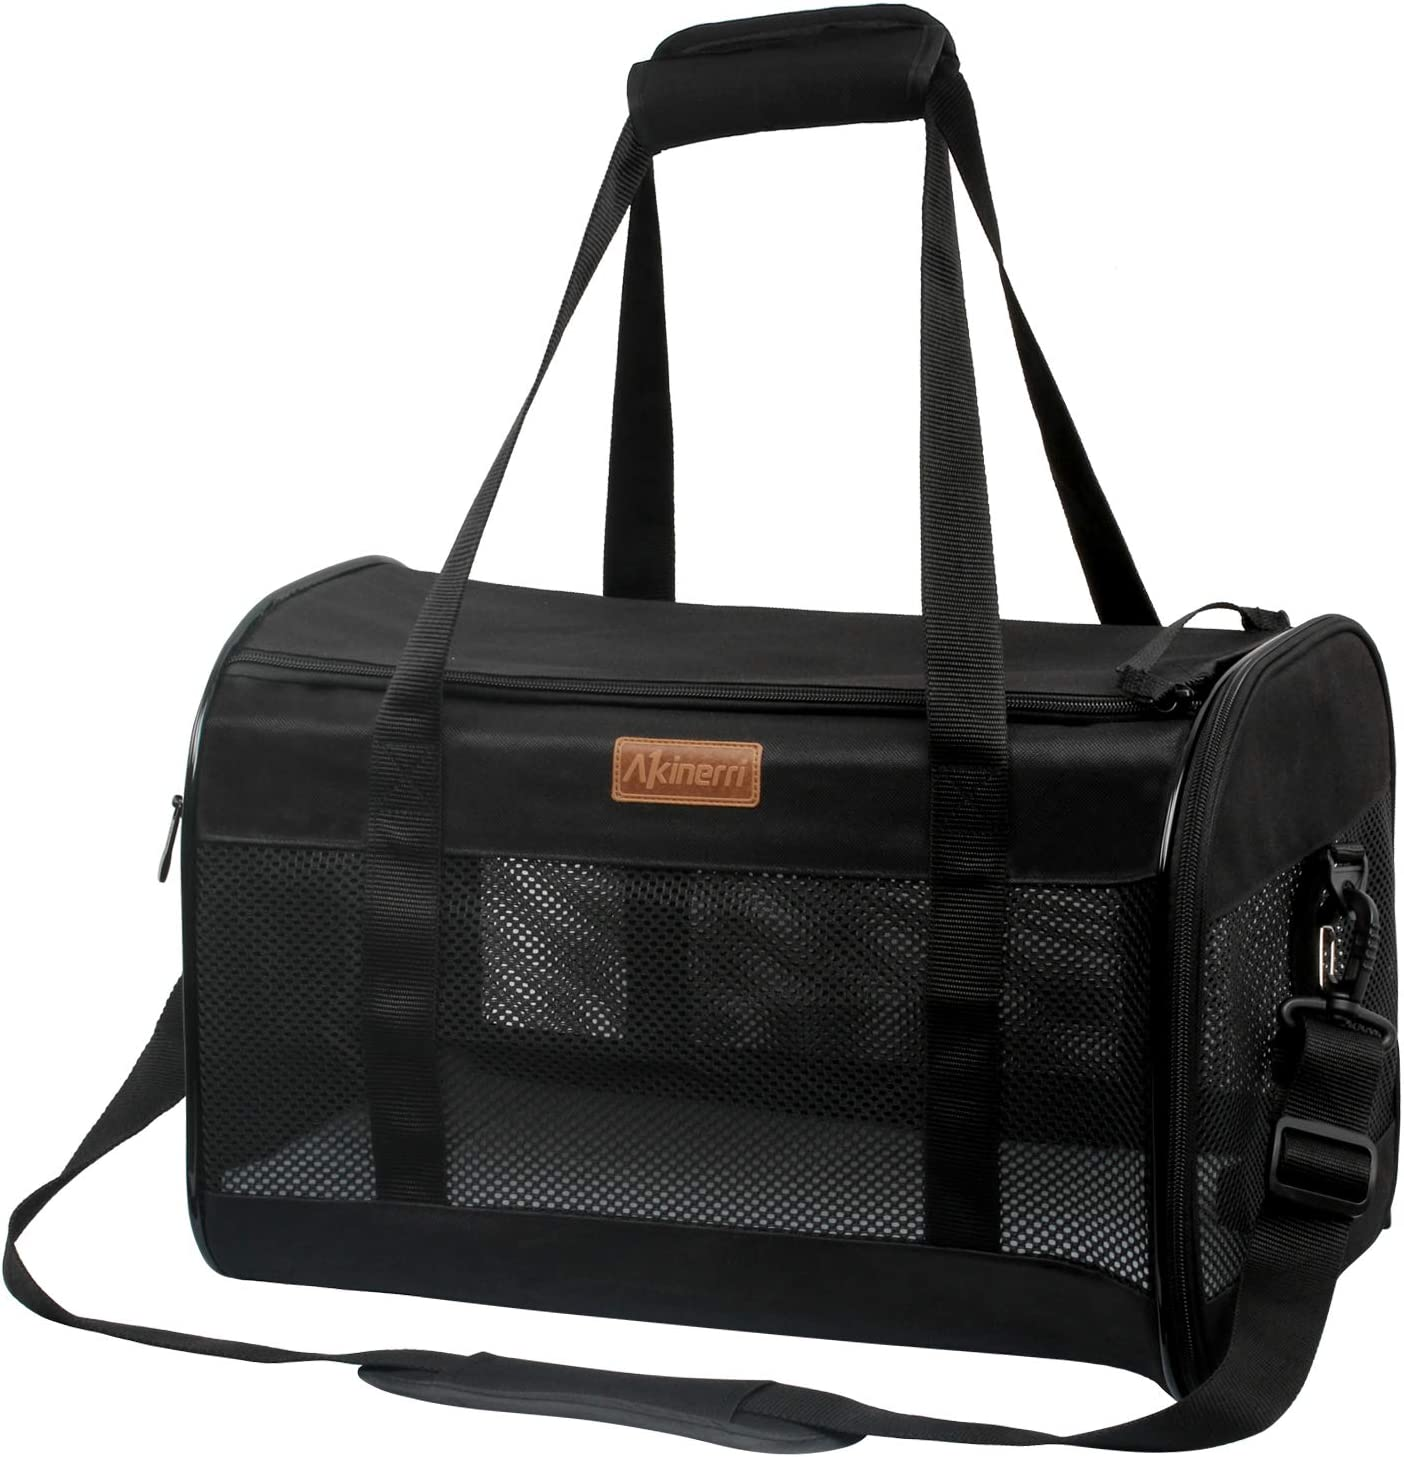 Akinerri Louisville-Jefferson County Mall Airline Approved Pet SEAL limited product Carriers Soft Sided Collapsible Pe